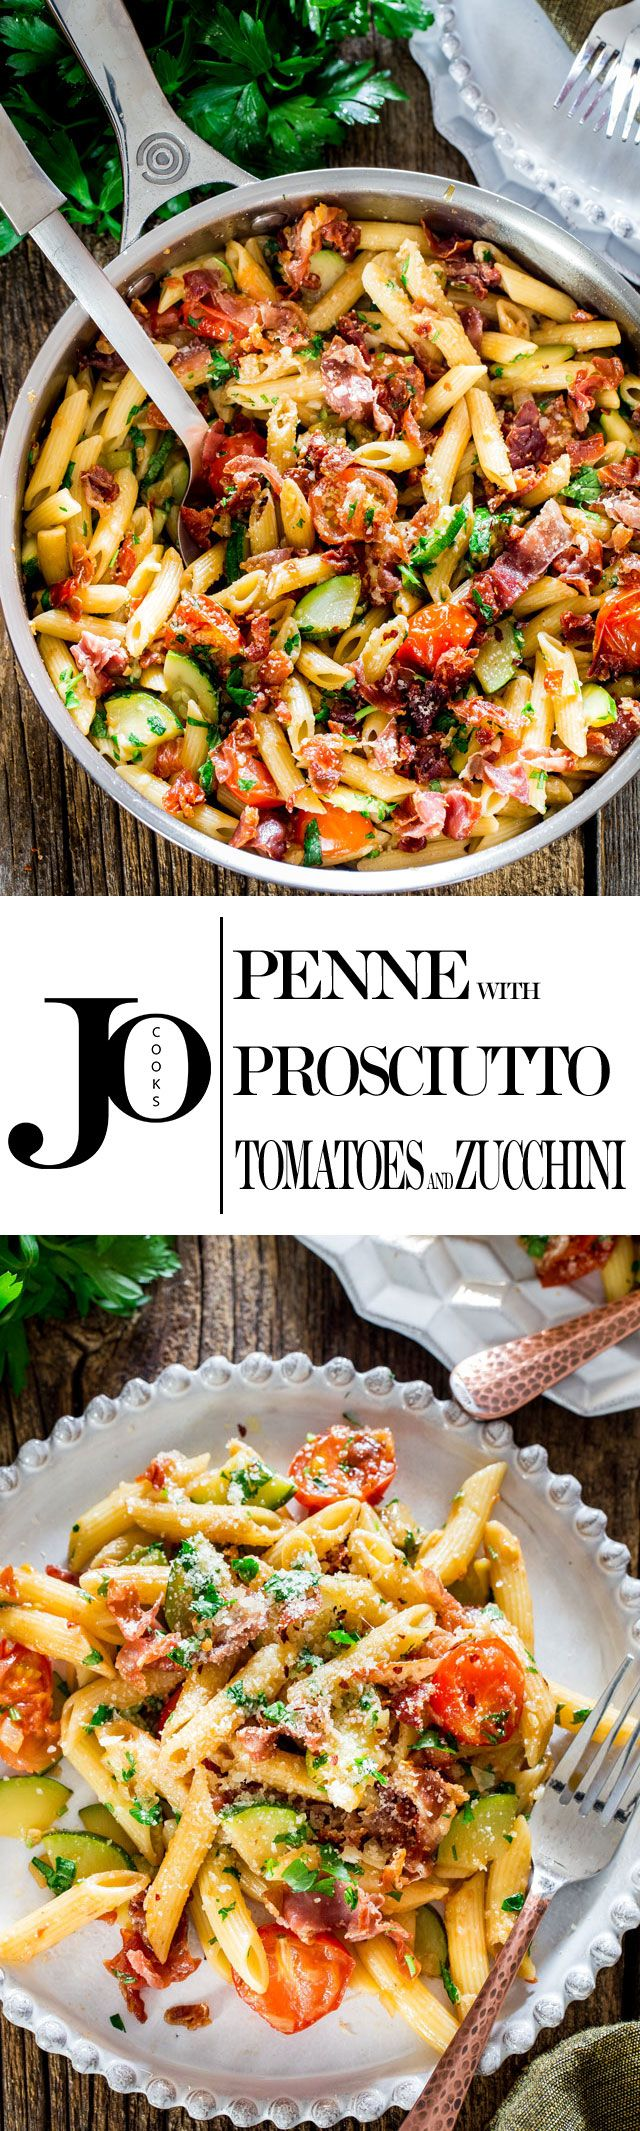 This Penne with Prosciutto, Tomatoes and Zucchini can be on your dinner table in 30 minutes. Crispy bits of prosciutto, zucchini and blistered cherry tomatoes is what makes this penne incredibly delic(Baked Chicken And Rice)